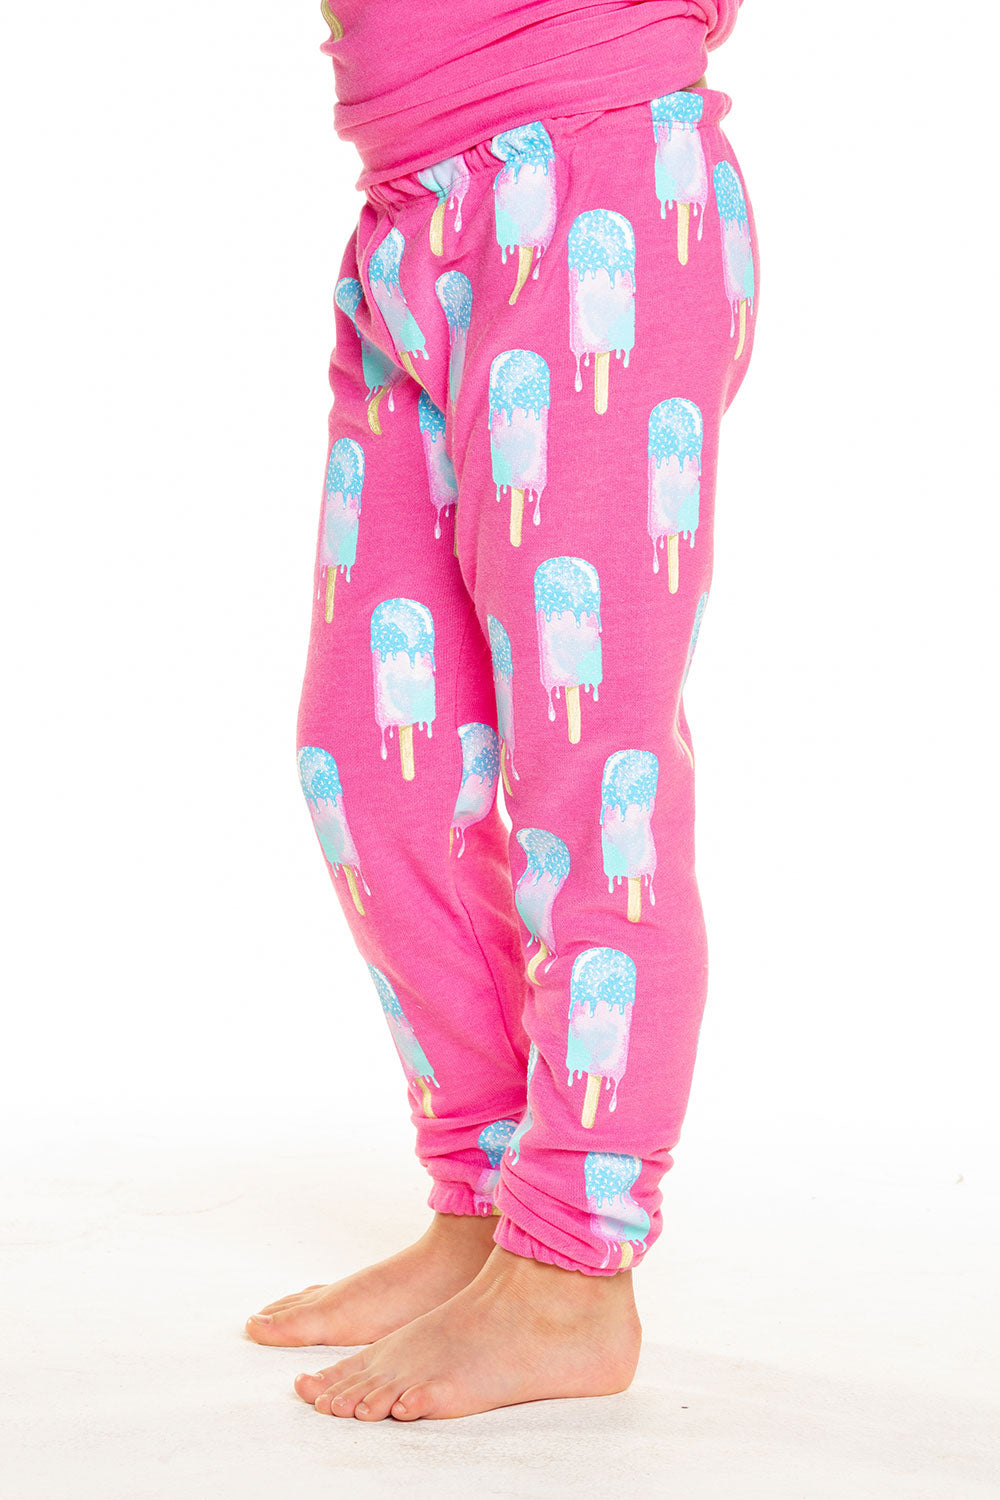 Drippy Ice Cream Pants GIRLS chaserbrand4.myshopify.com